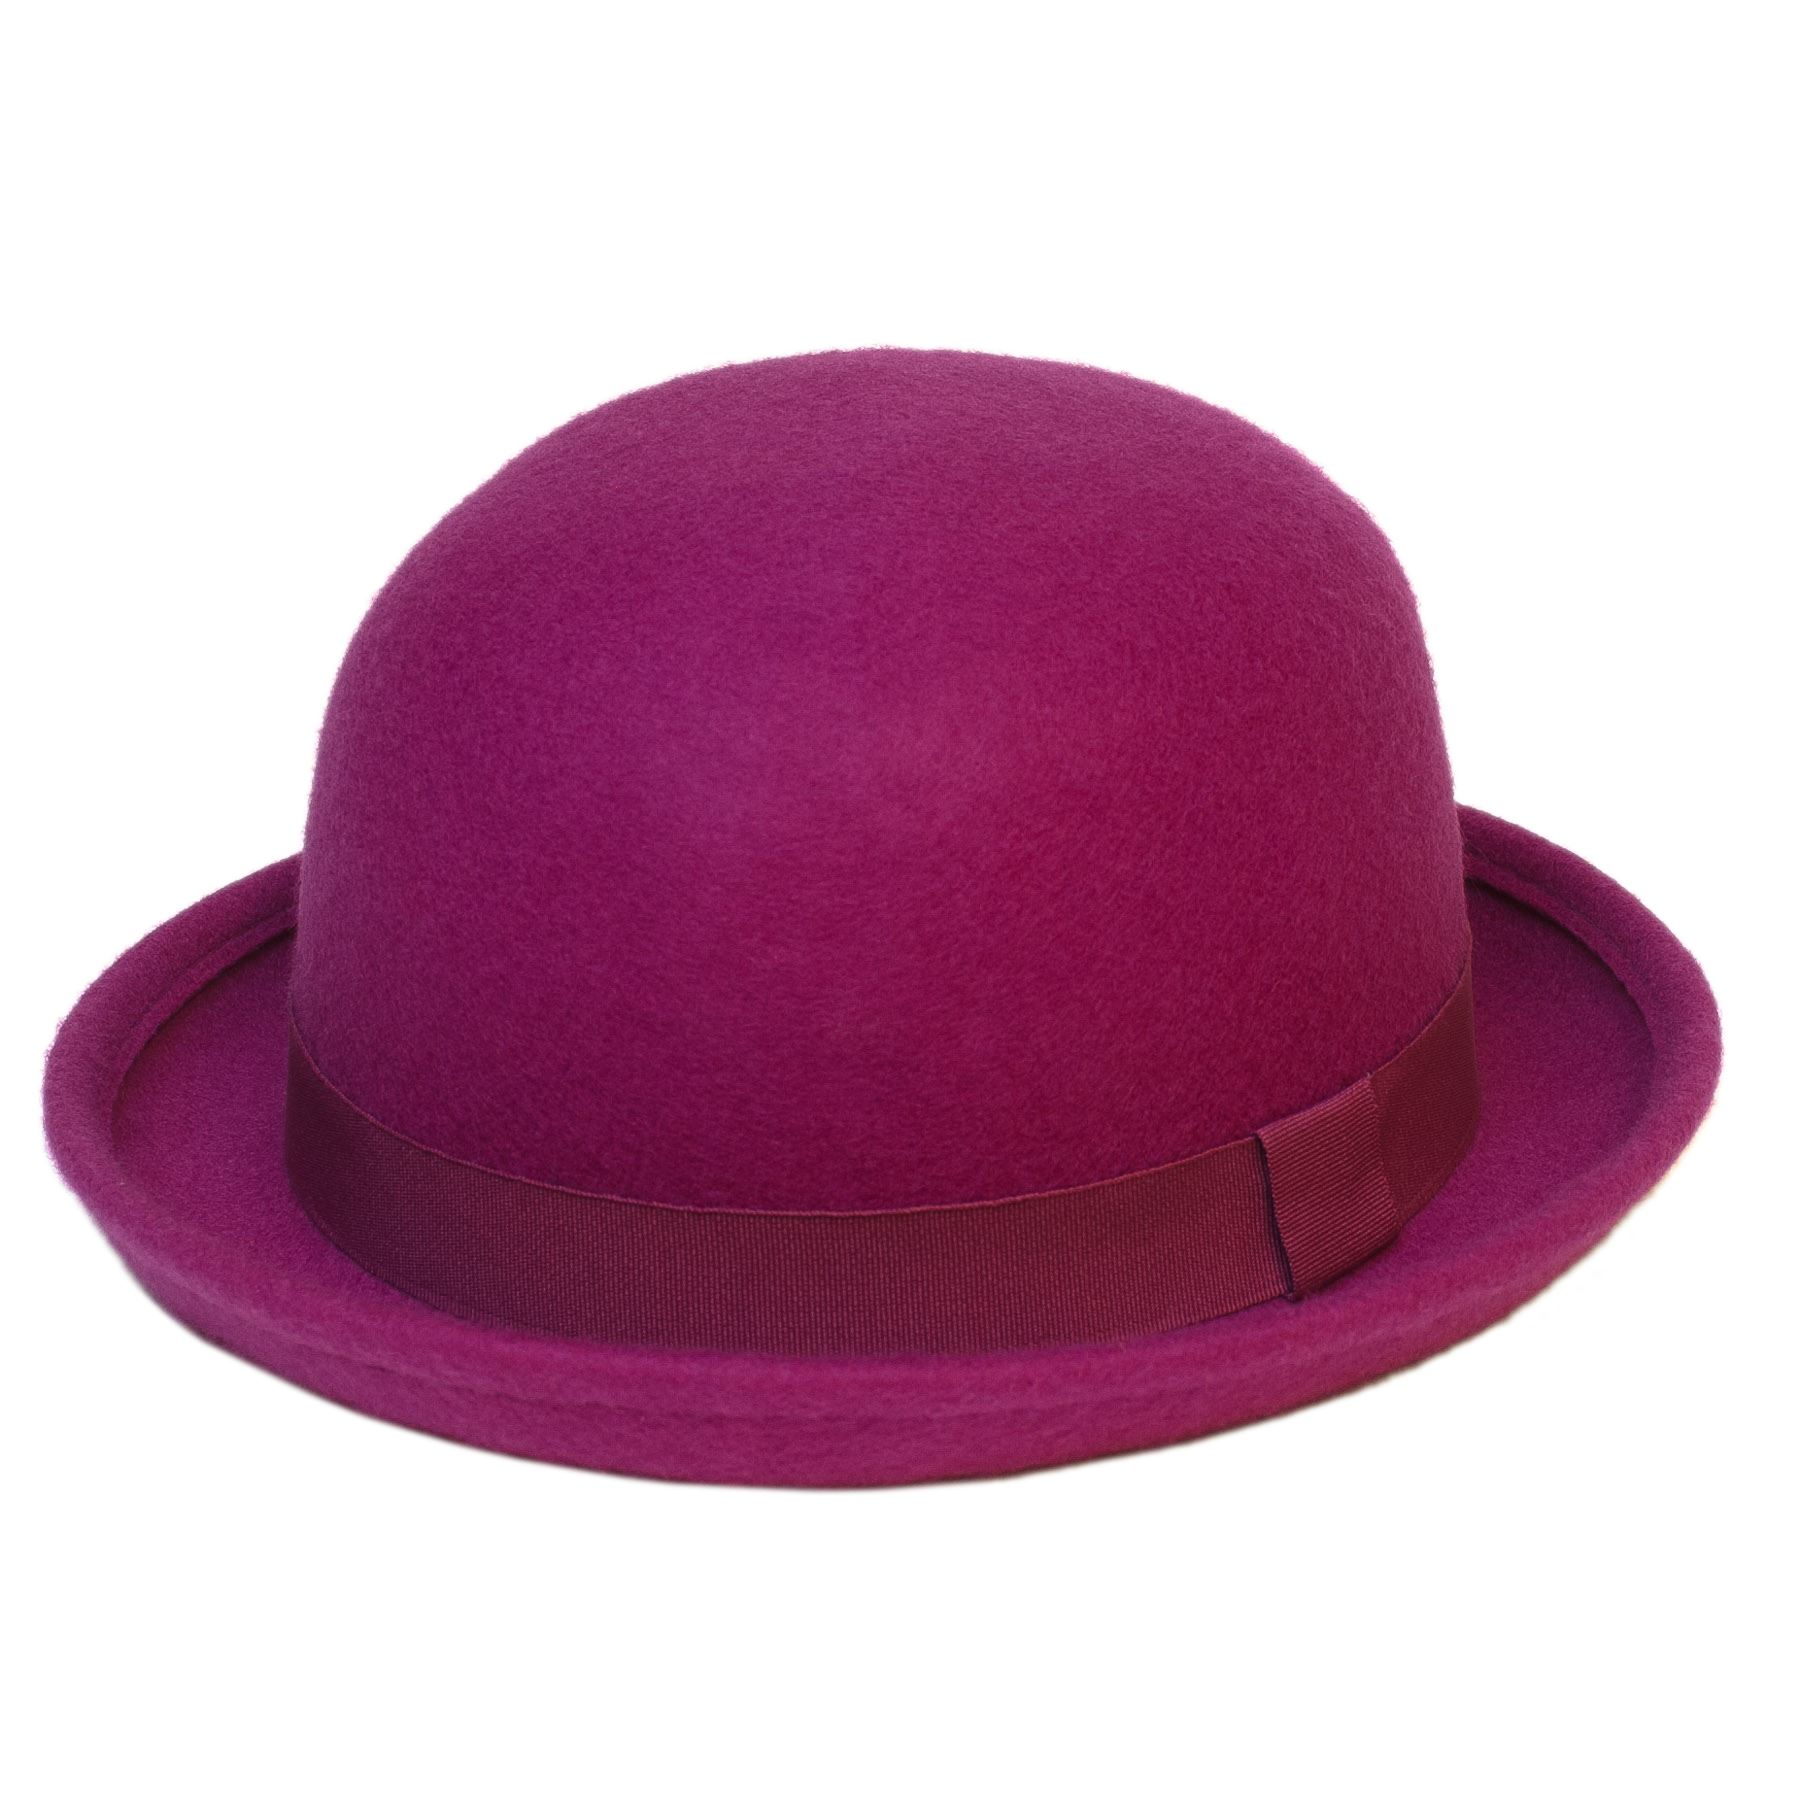 Is The Bowler Hat Making A Comeback? The Read The Journal 8